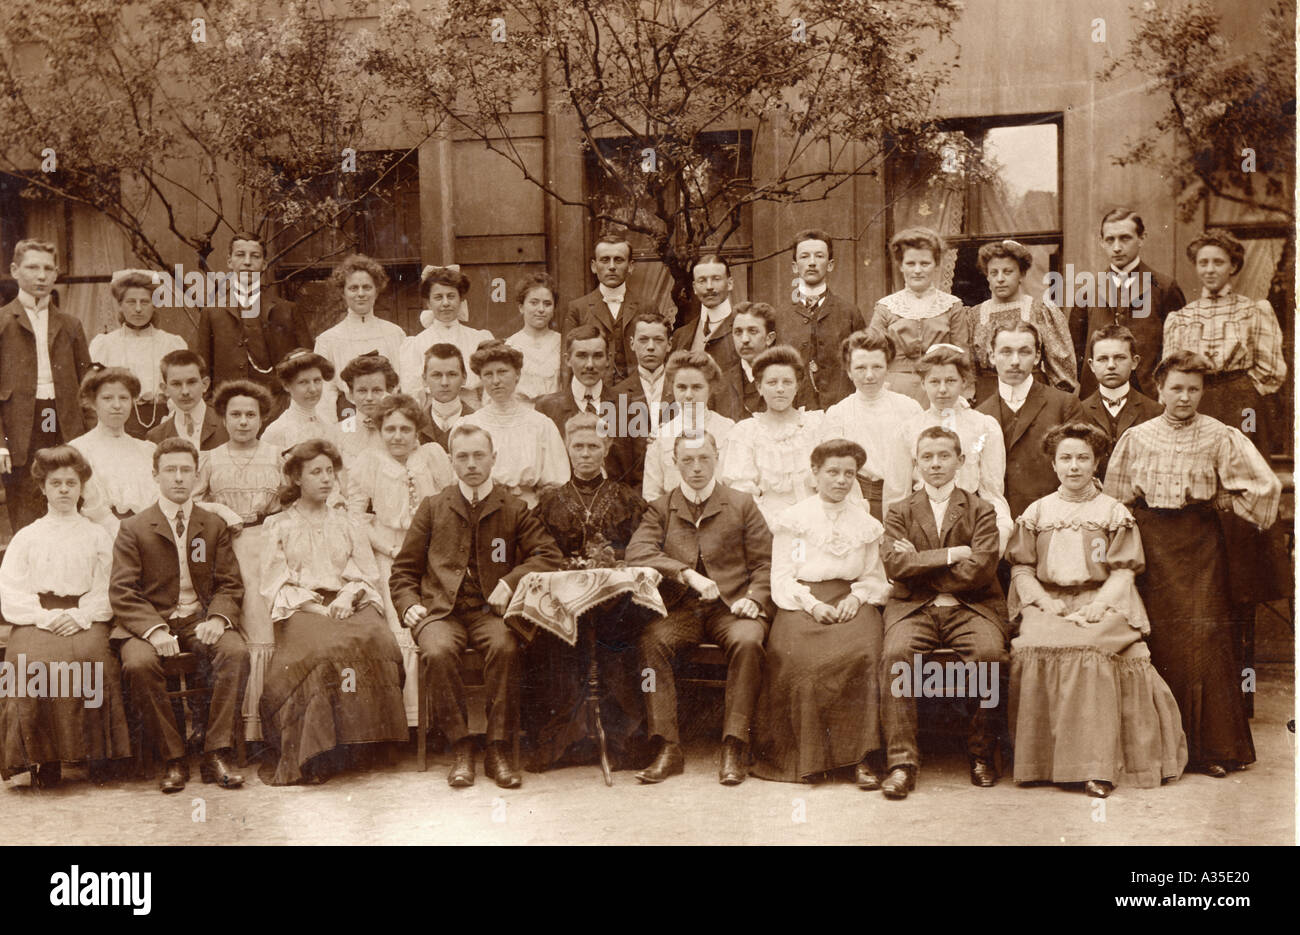 group photo of a family in the year 1900 - Stock Image